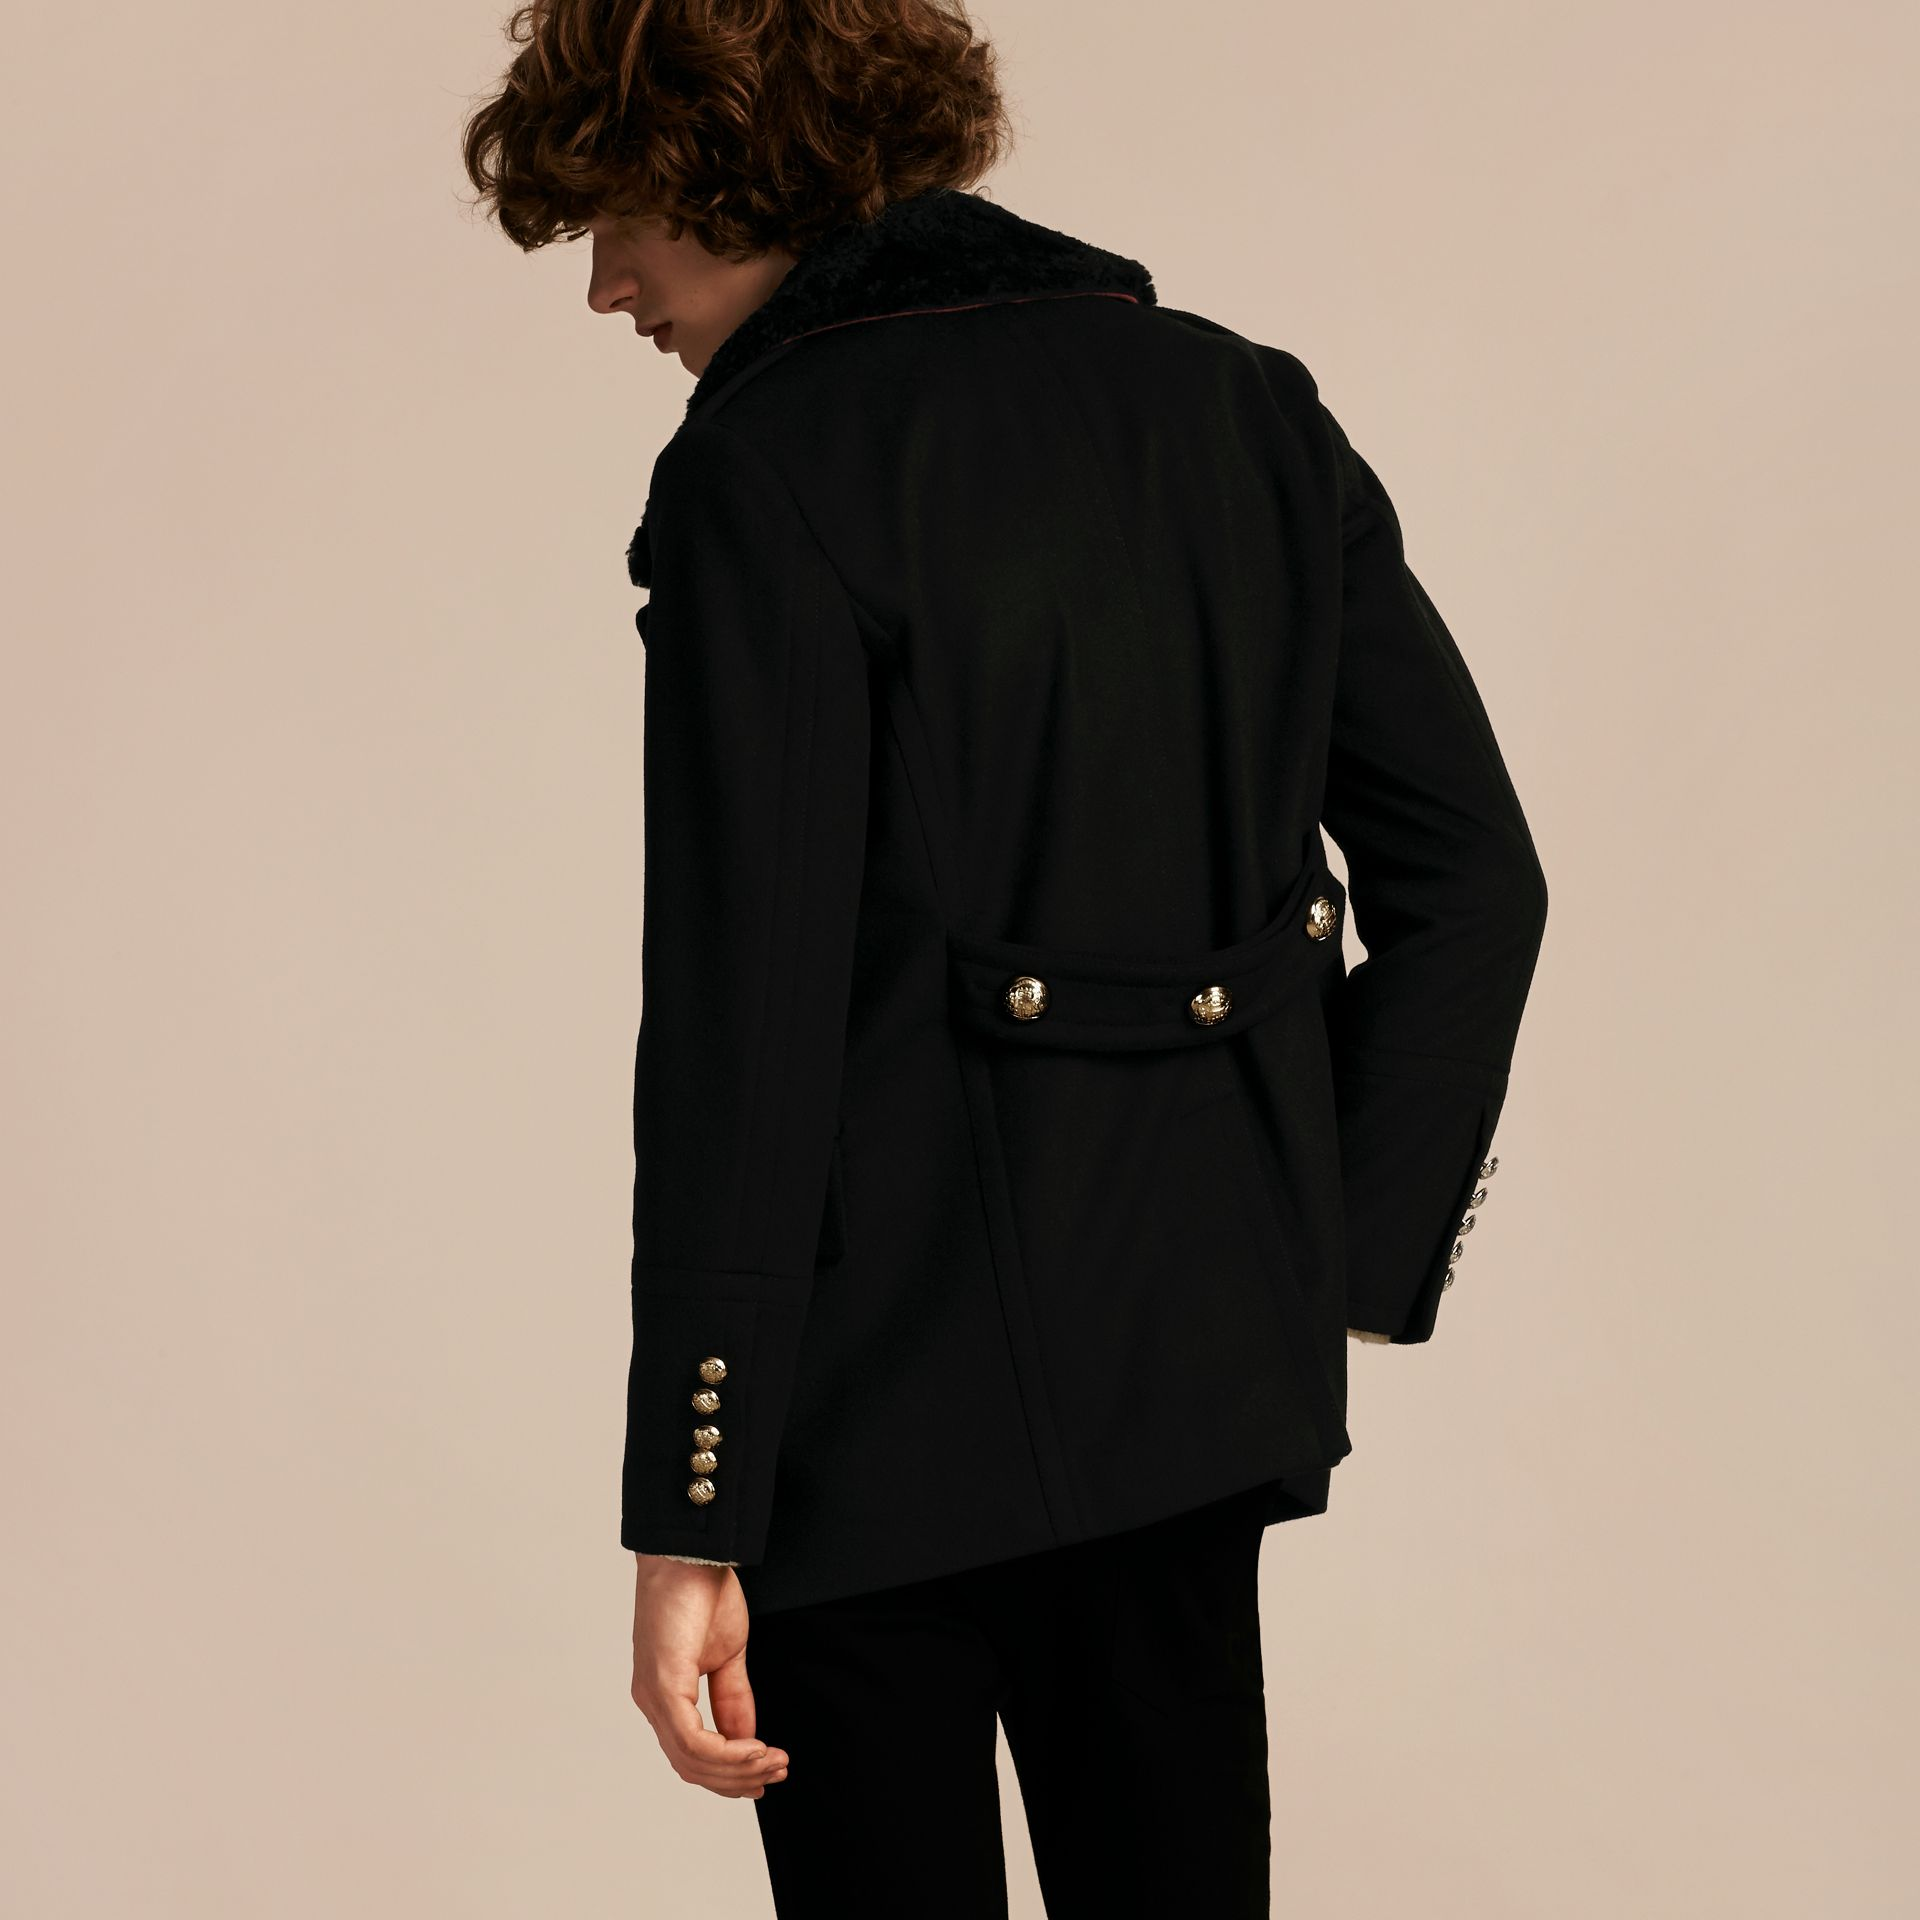 Black Military Pea Coat with Detachable Shearling Collar - gallery image 3